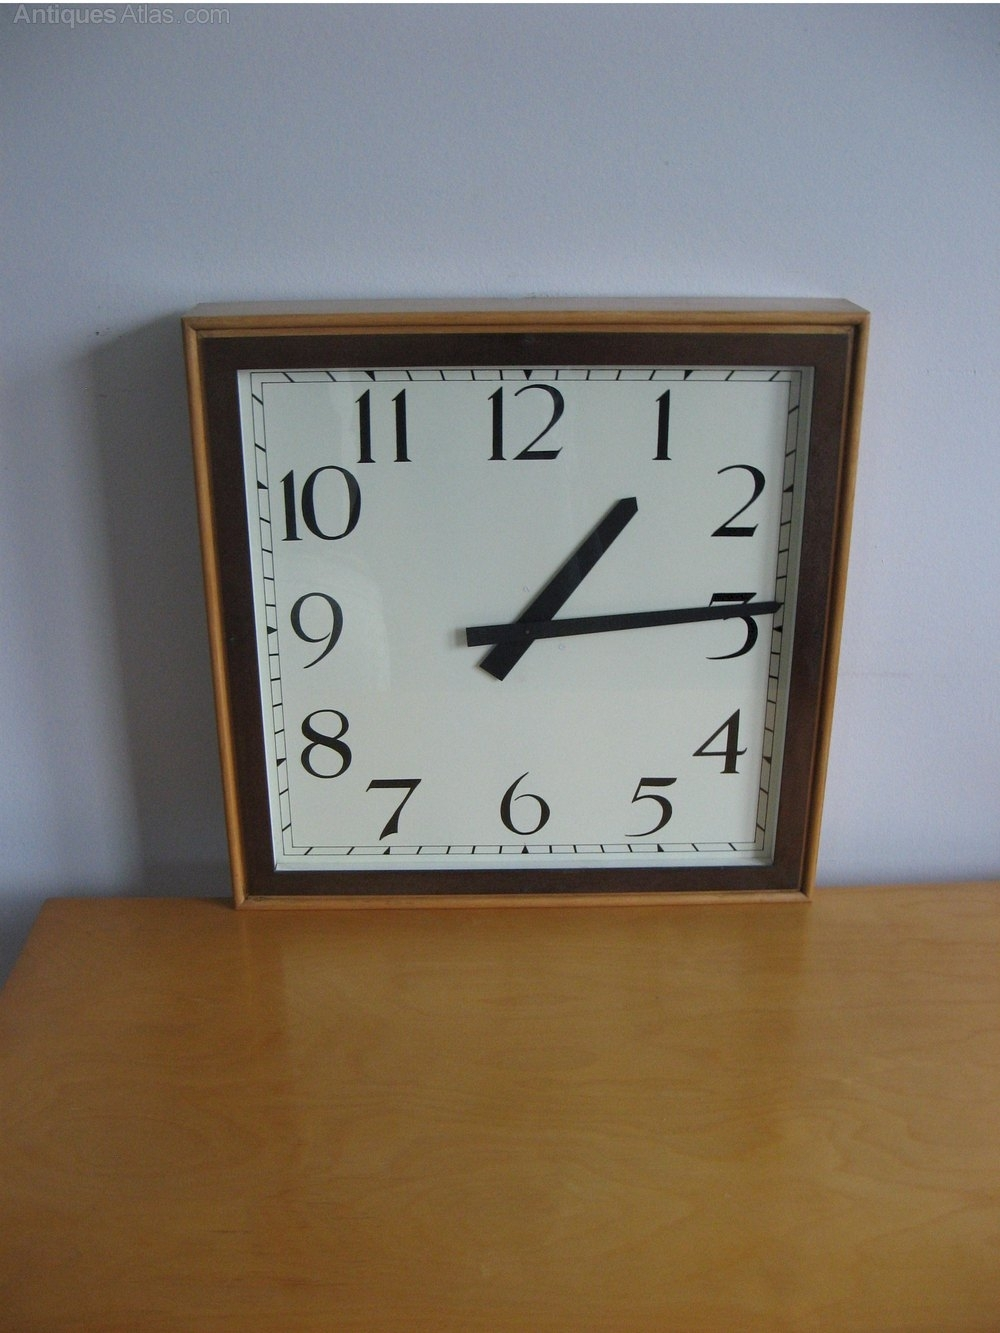 Antiques Atlas - Large Art Deco Wall Clock throughout Art Deco Wall Clock (Image 1 of 20)